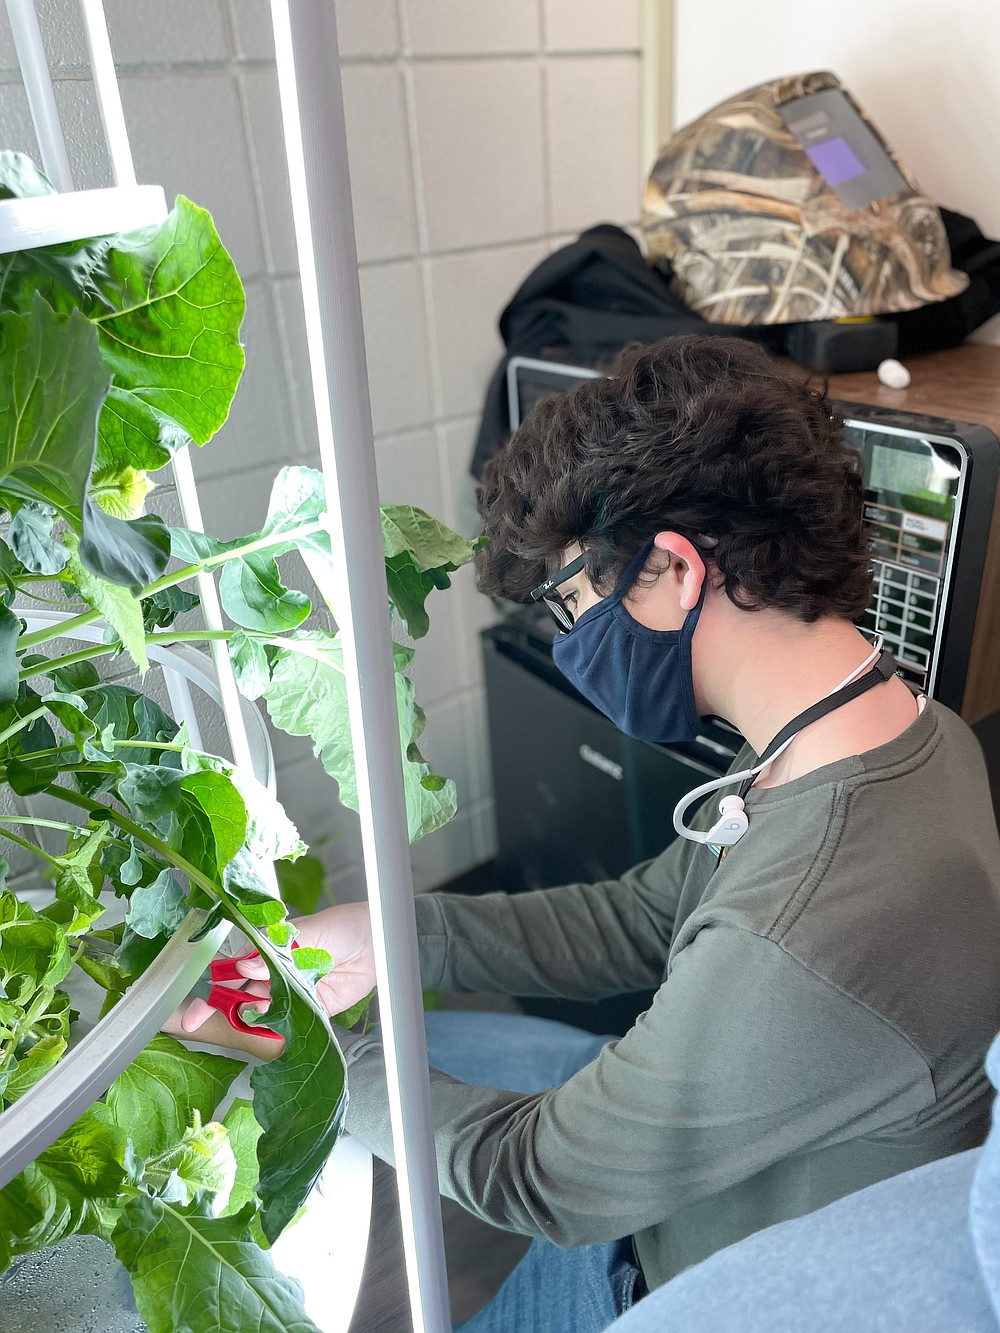 Conner Menard, a White Hall High School ninth-grader, cares for plants in a hydroponic garden. (Special to The Commercial)